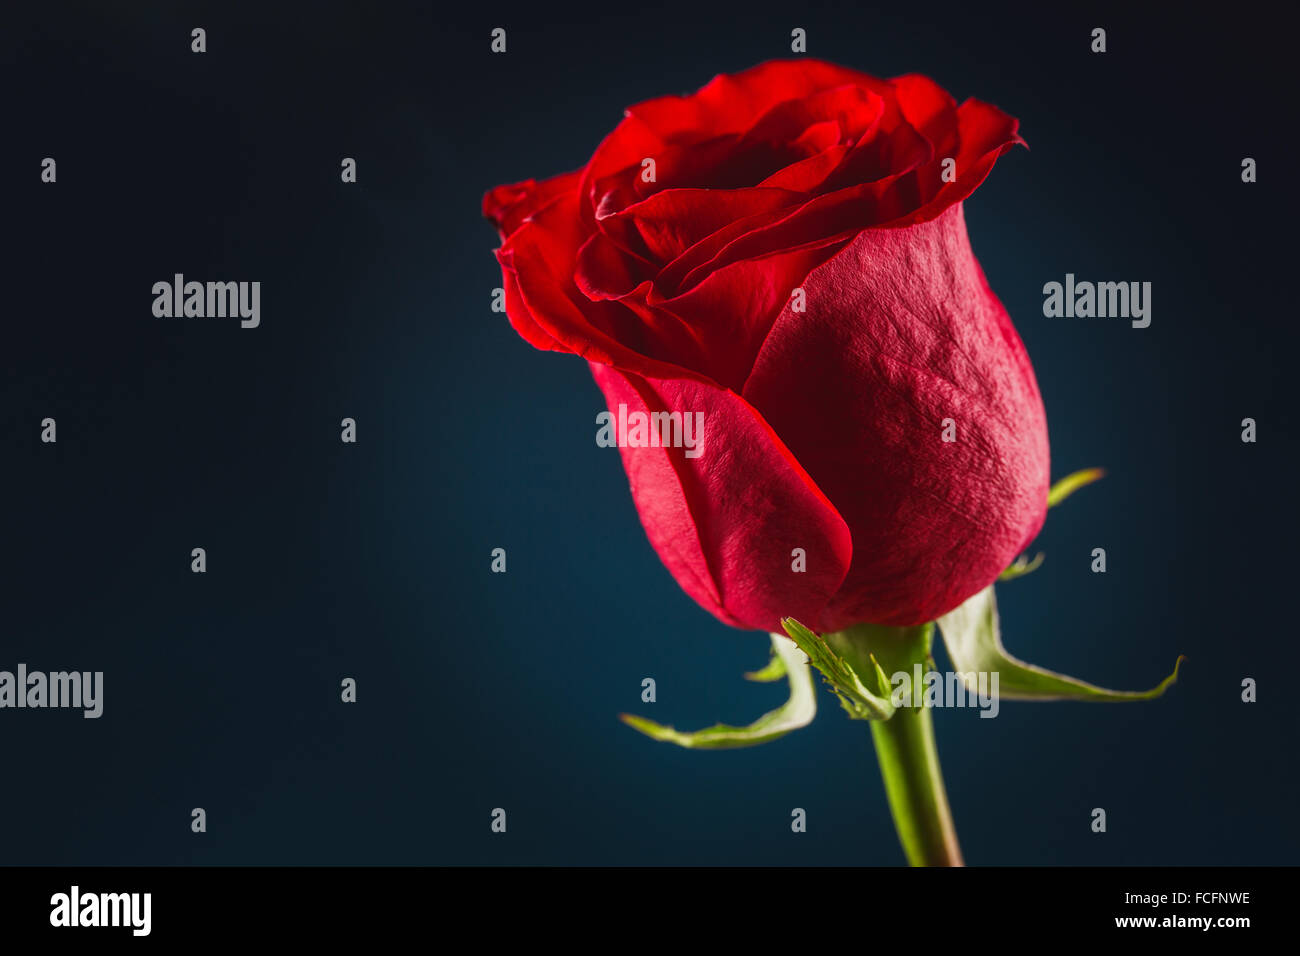 Beautiful Red Rose On Black Background! Stock Photo